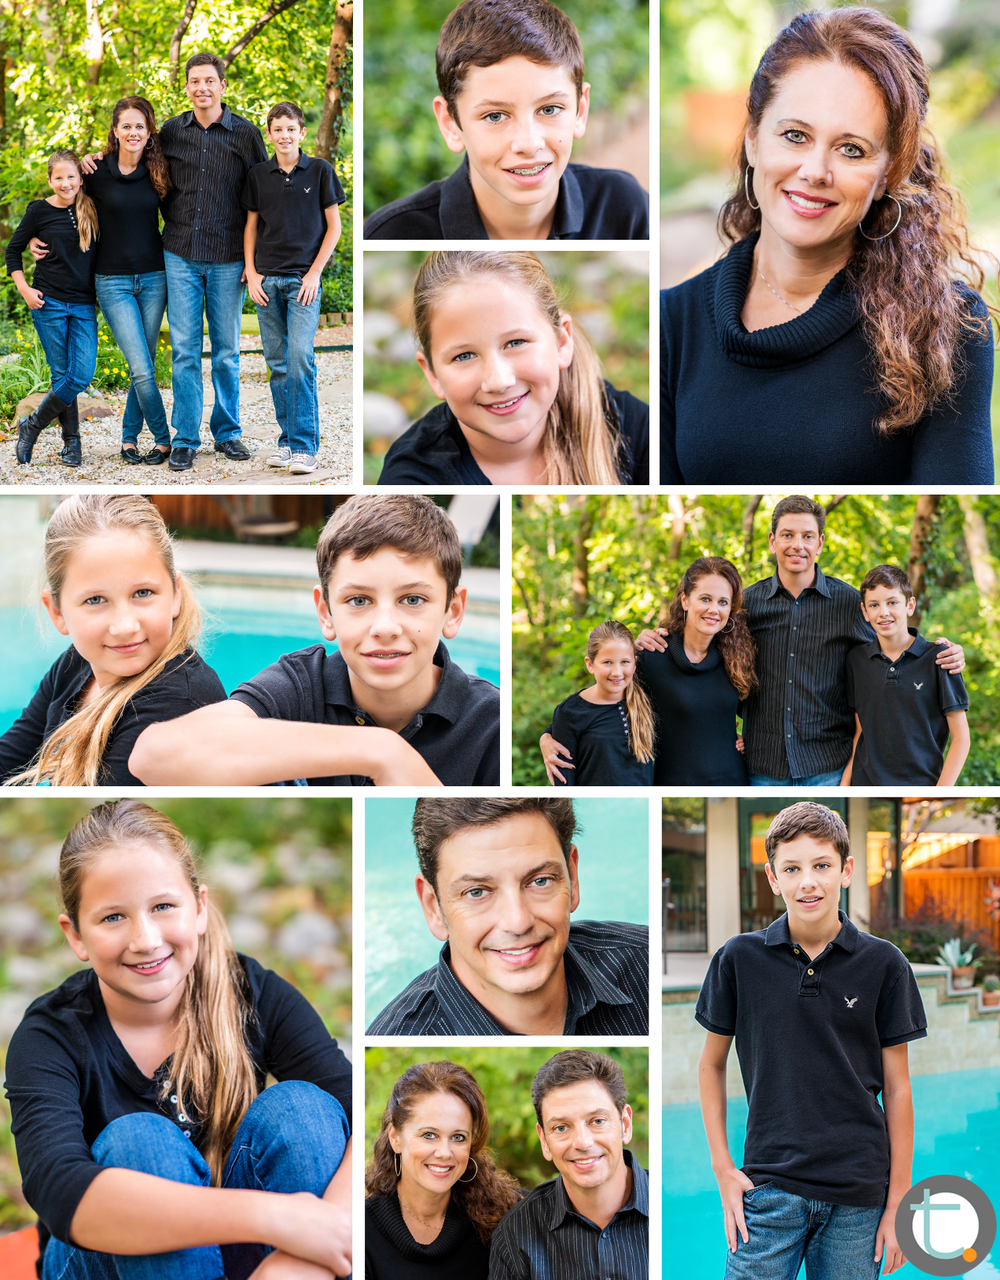 family_backyard_dallas_tracyallynphotography.jpg